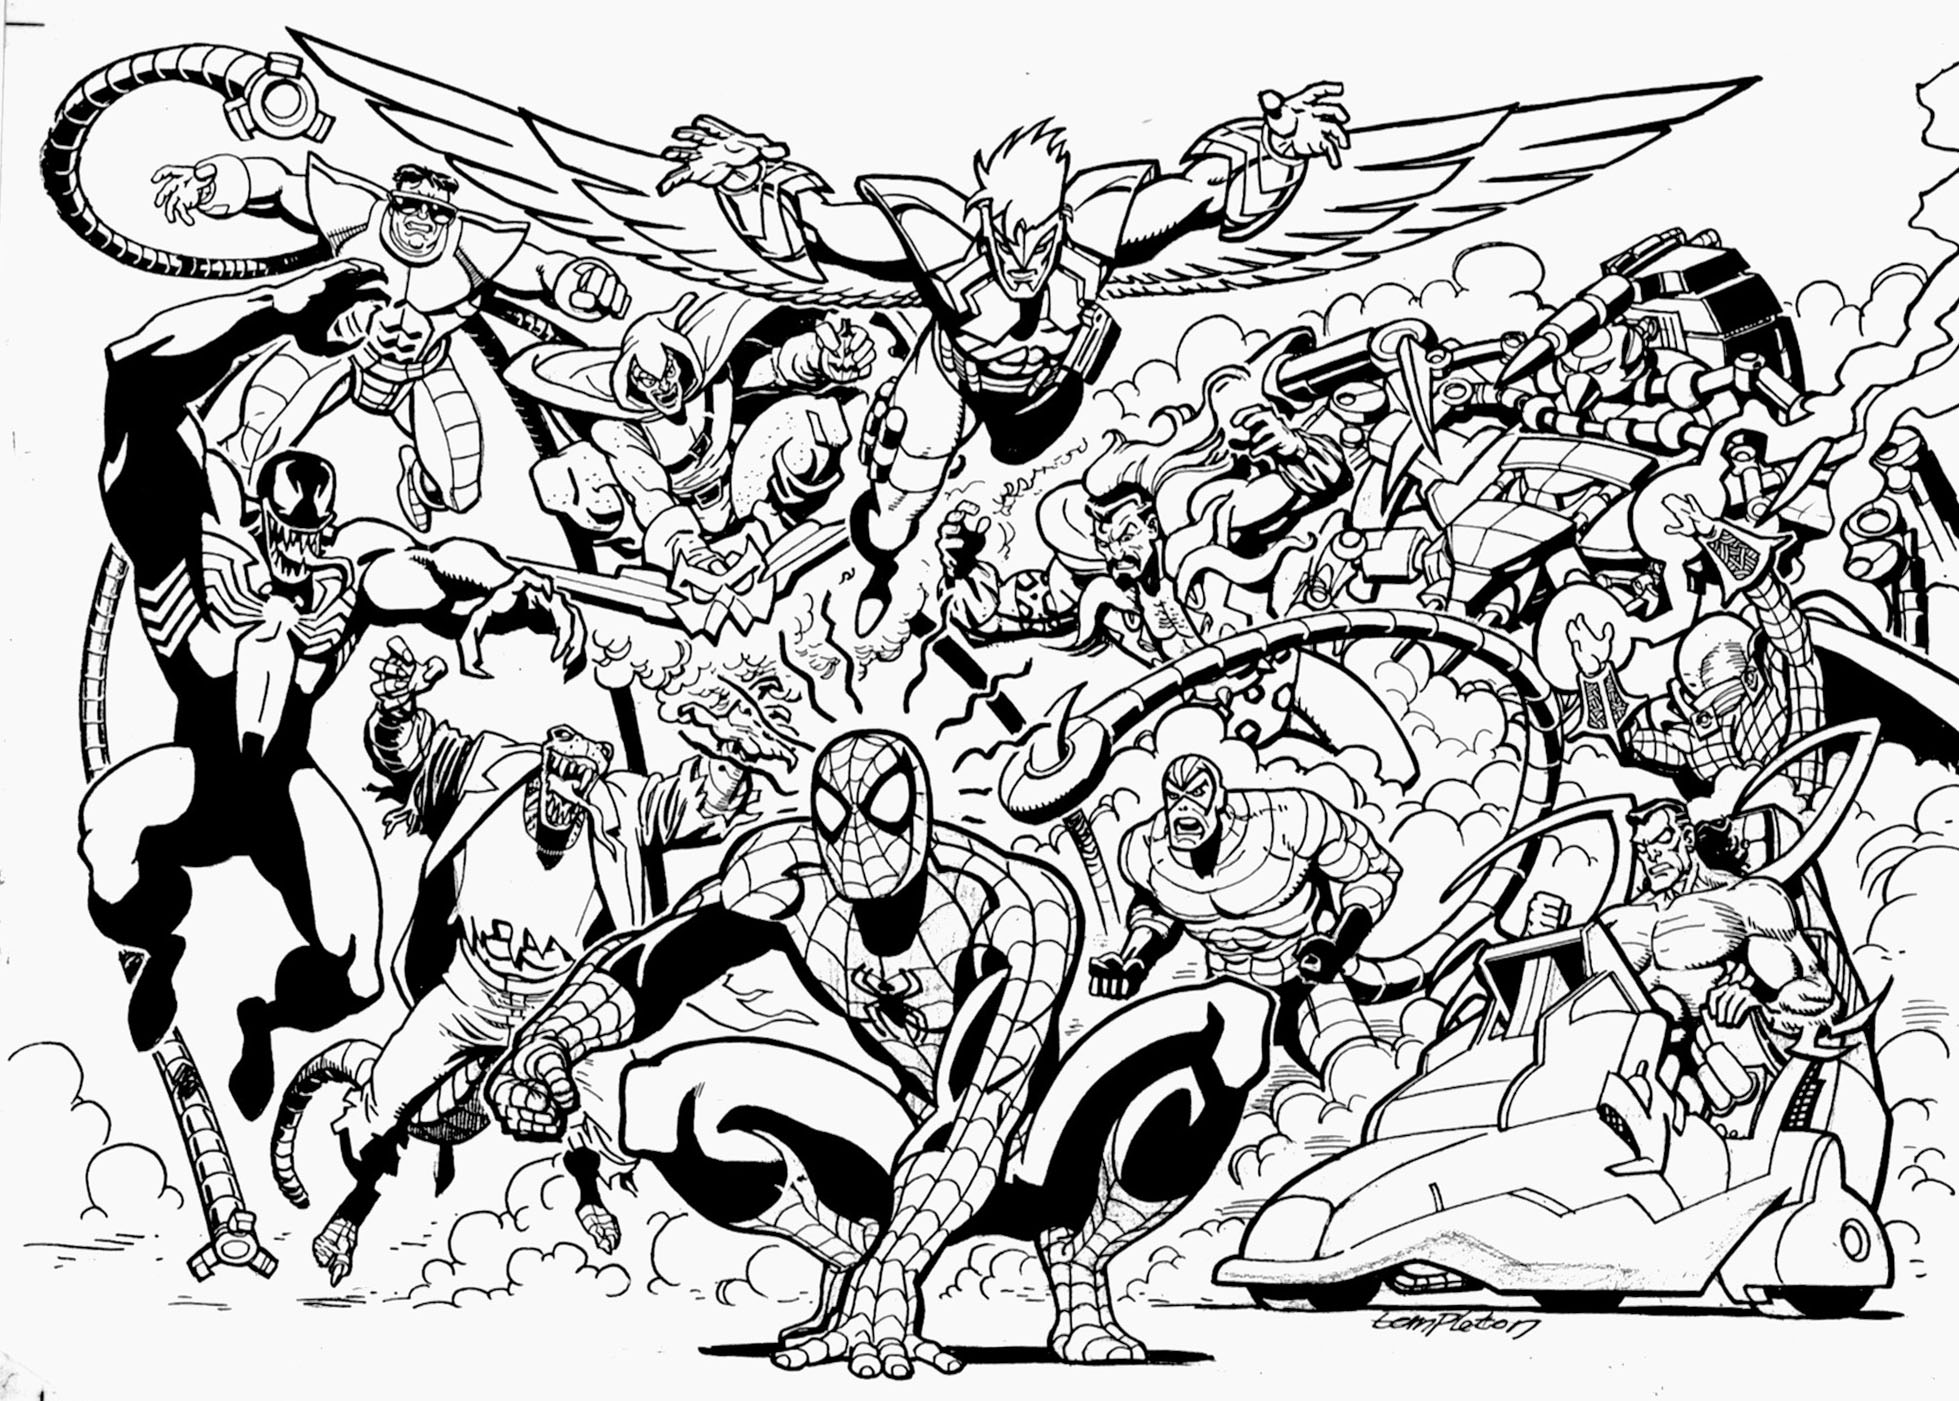 Avengers Drawing At GetDrawings.com